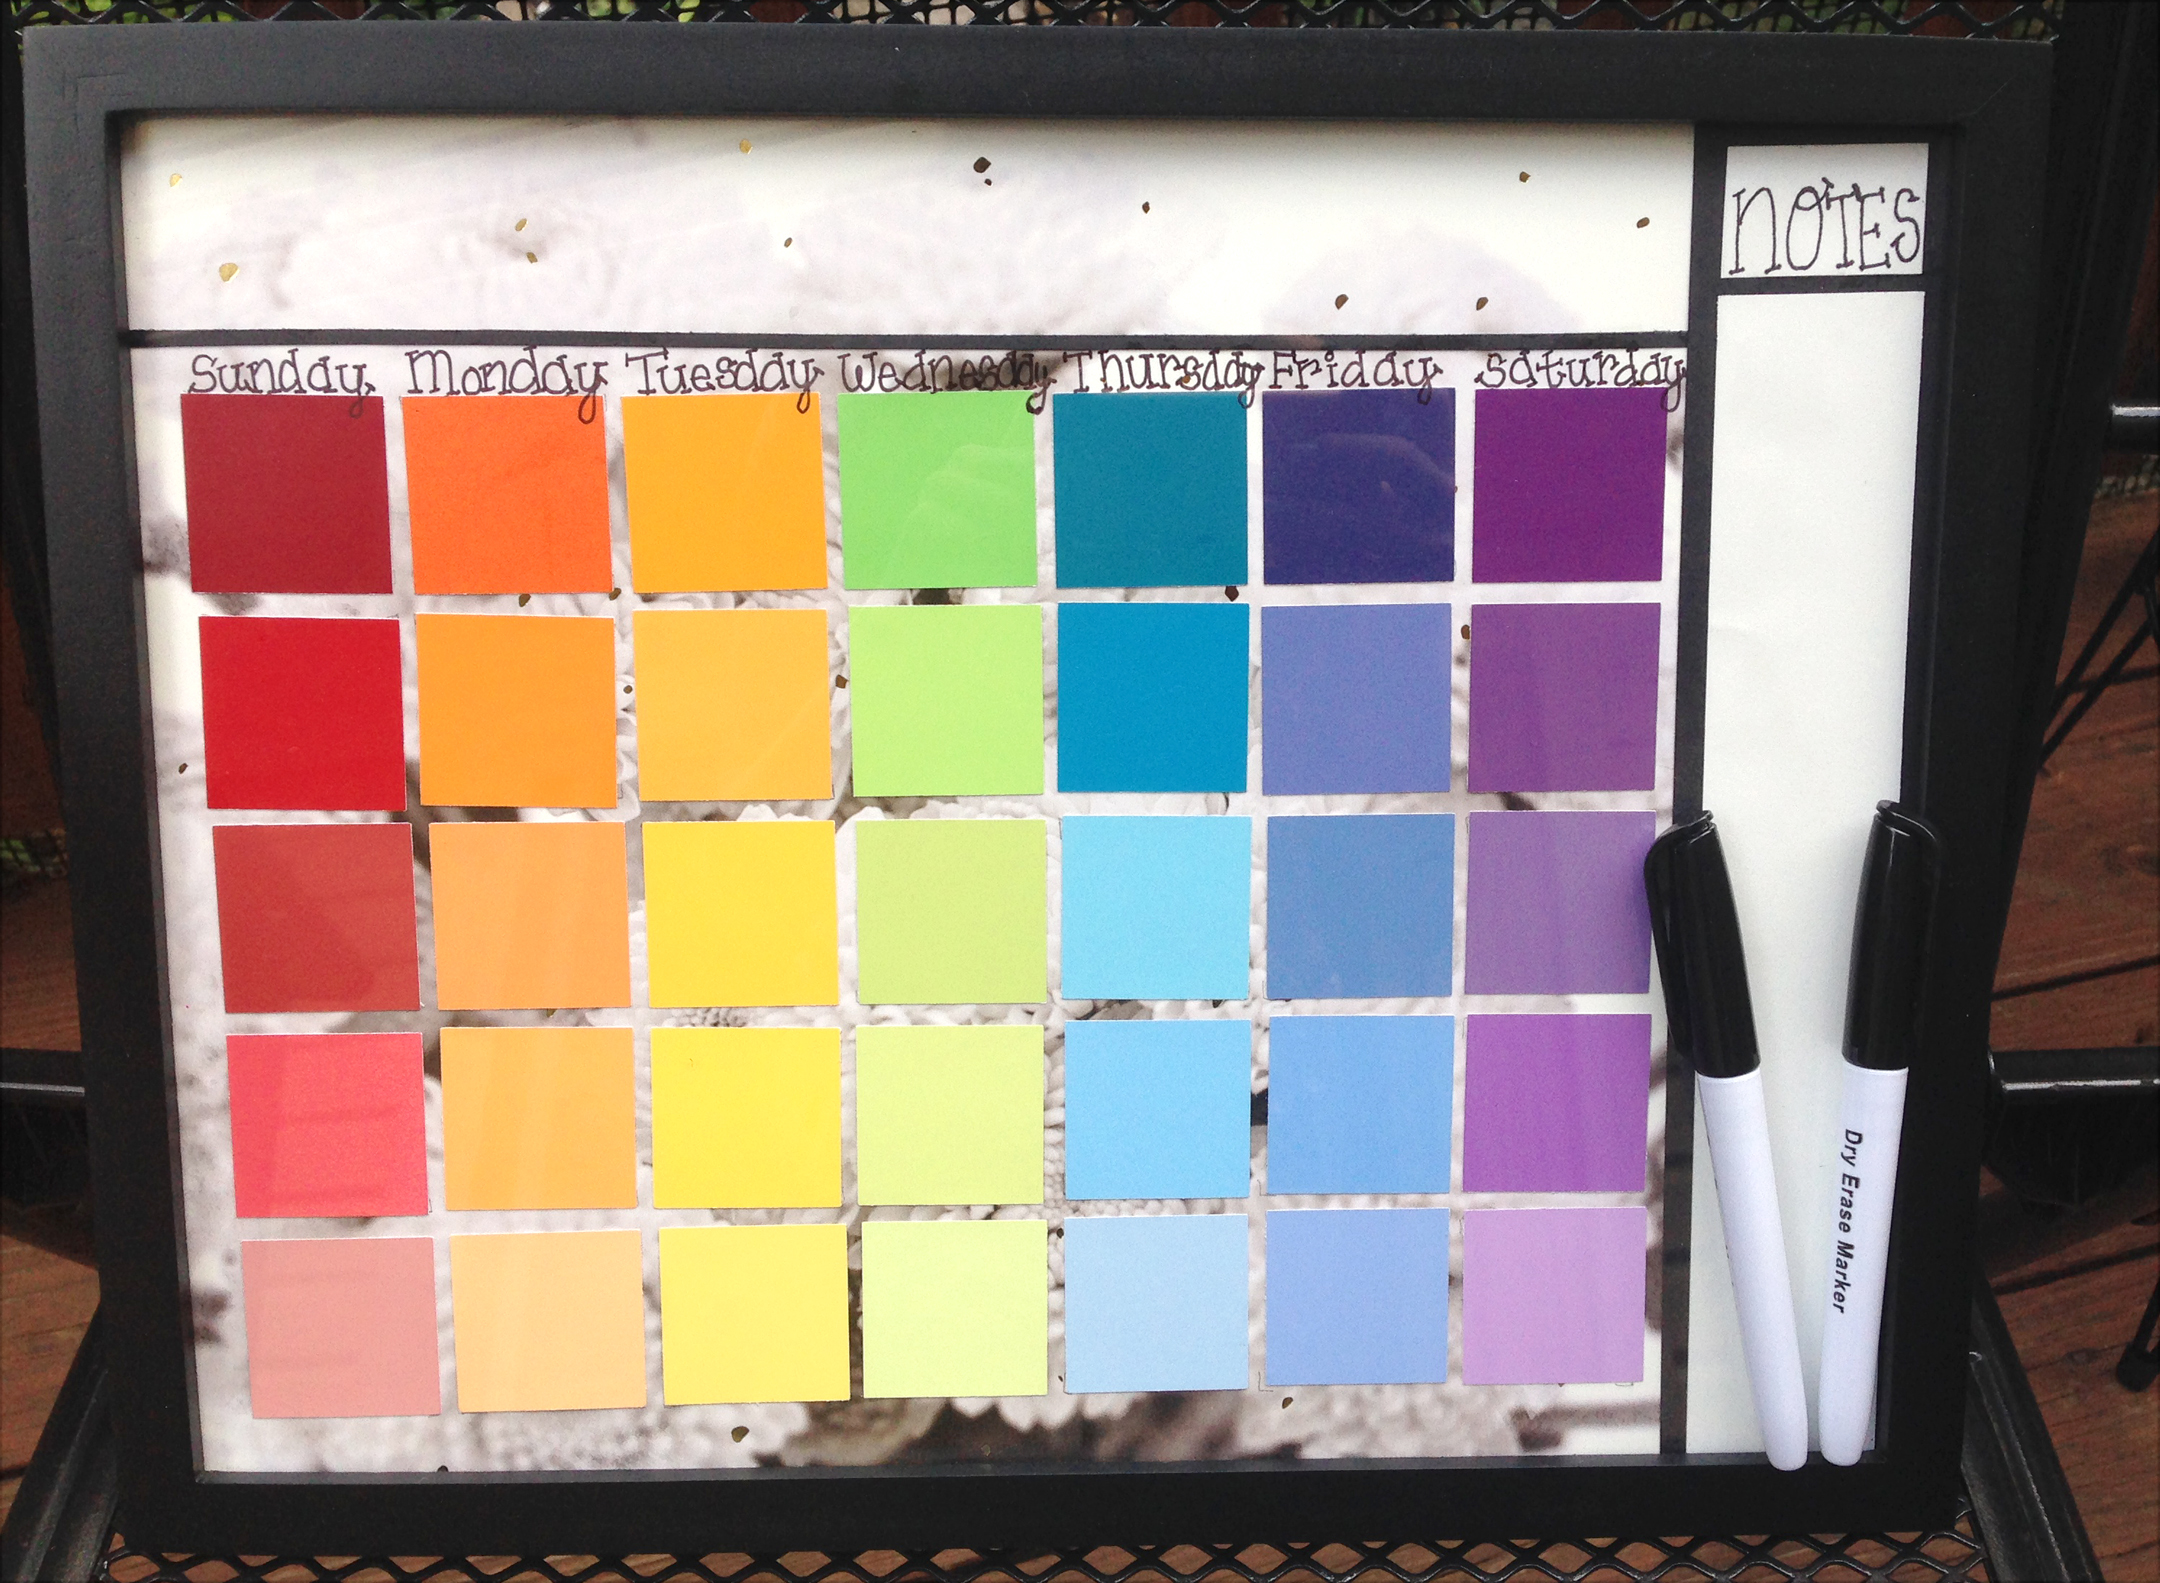 Diy Dry Erase Calendar With Paint Samples